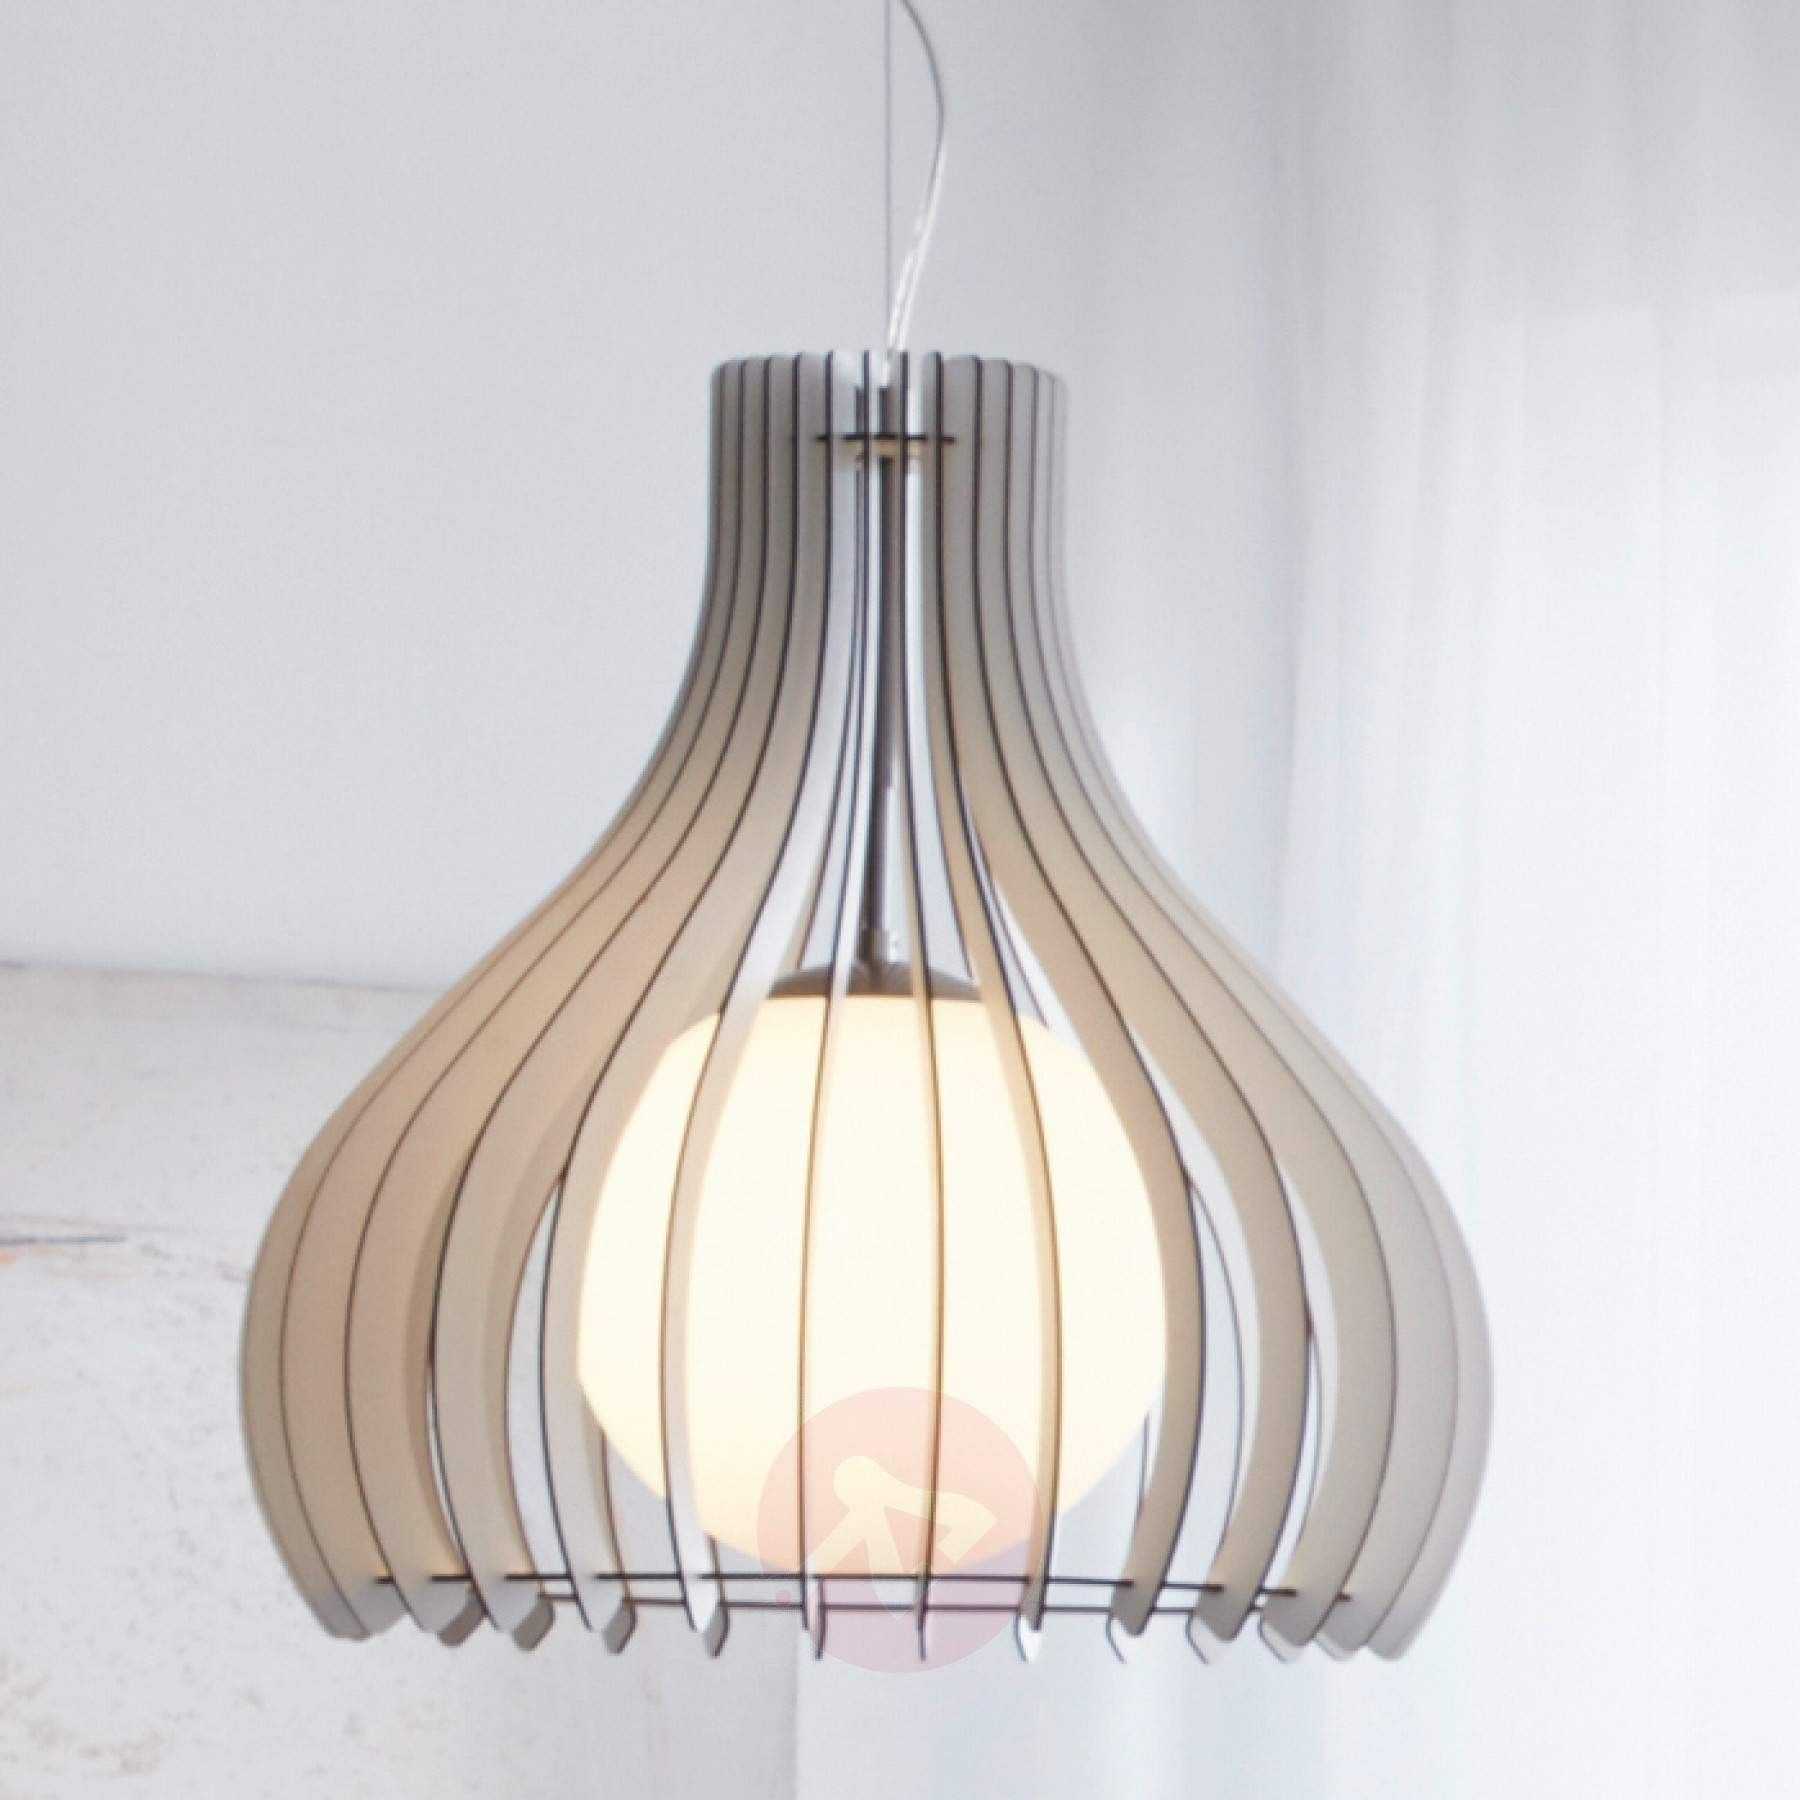 Tindori Slatted Wood Pendant Pendants Indoor Lighting Large Pendant Lighting Pendant Light Fixtures Pendant Light